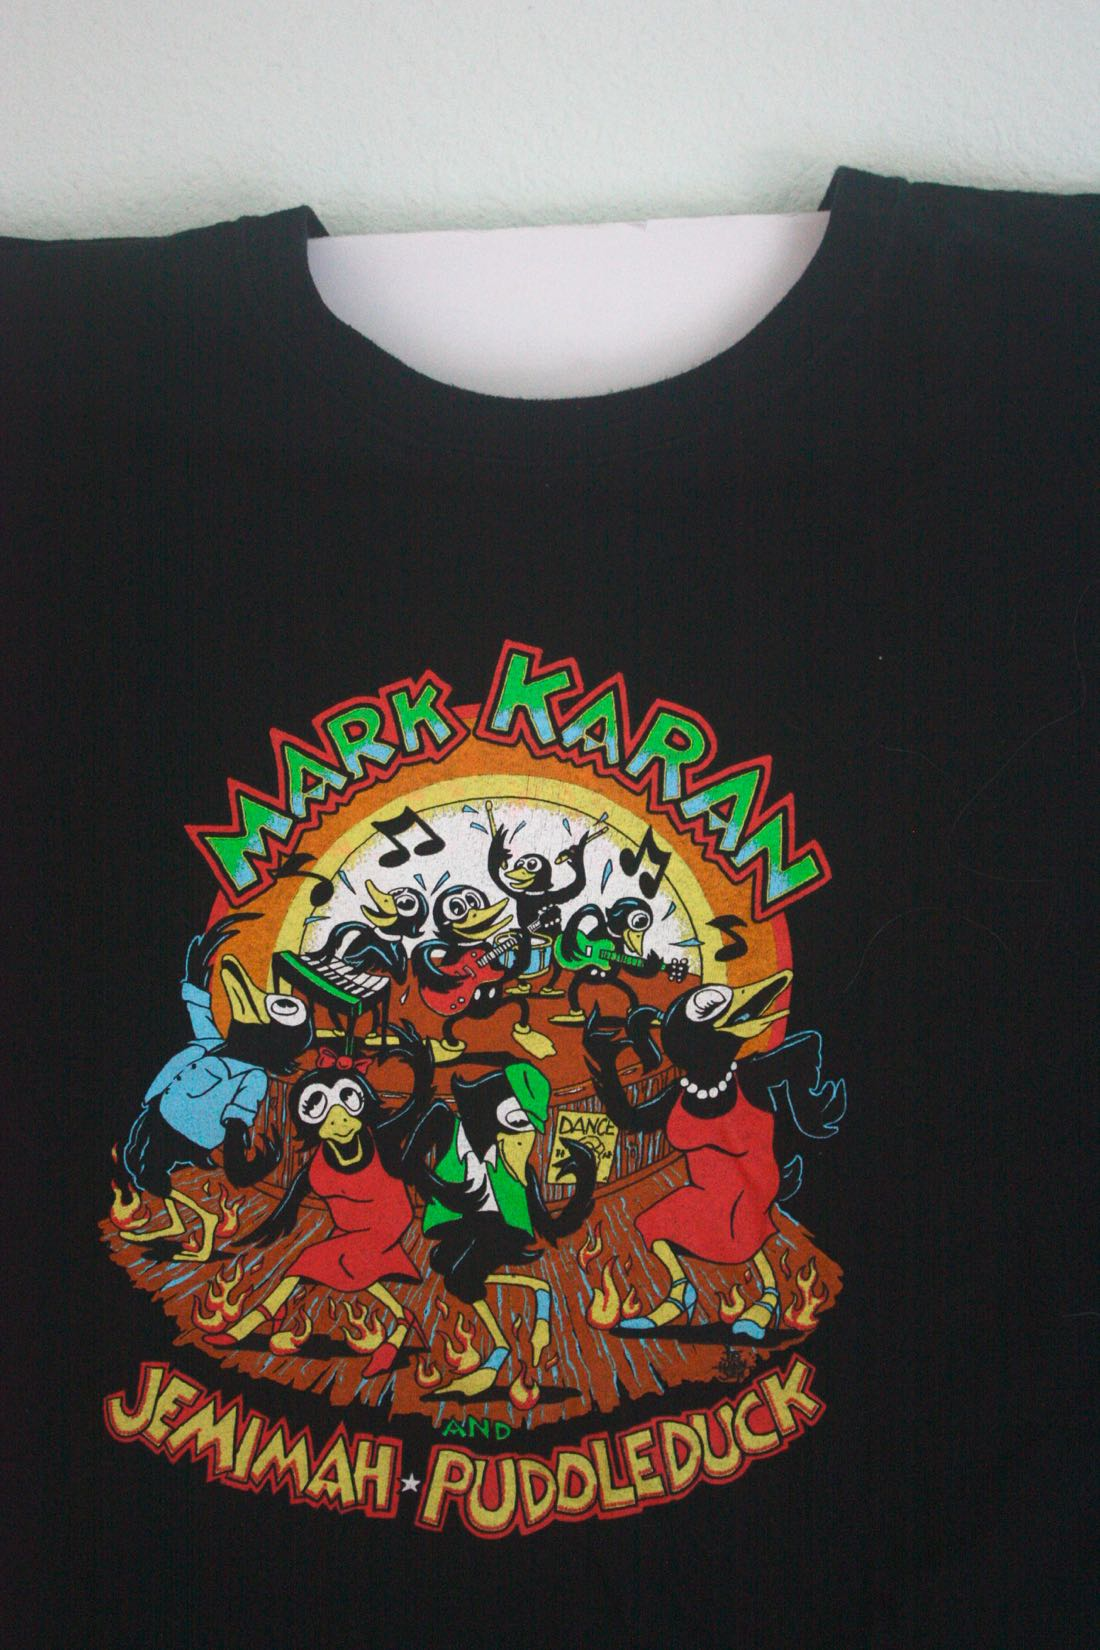 Jerimiah Puddleduck Grateful Dead Tribute Band Tee